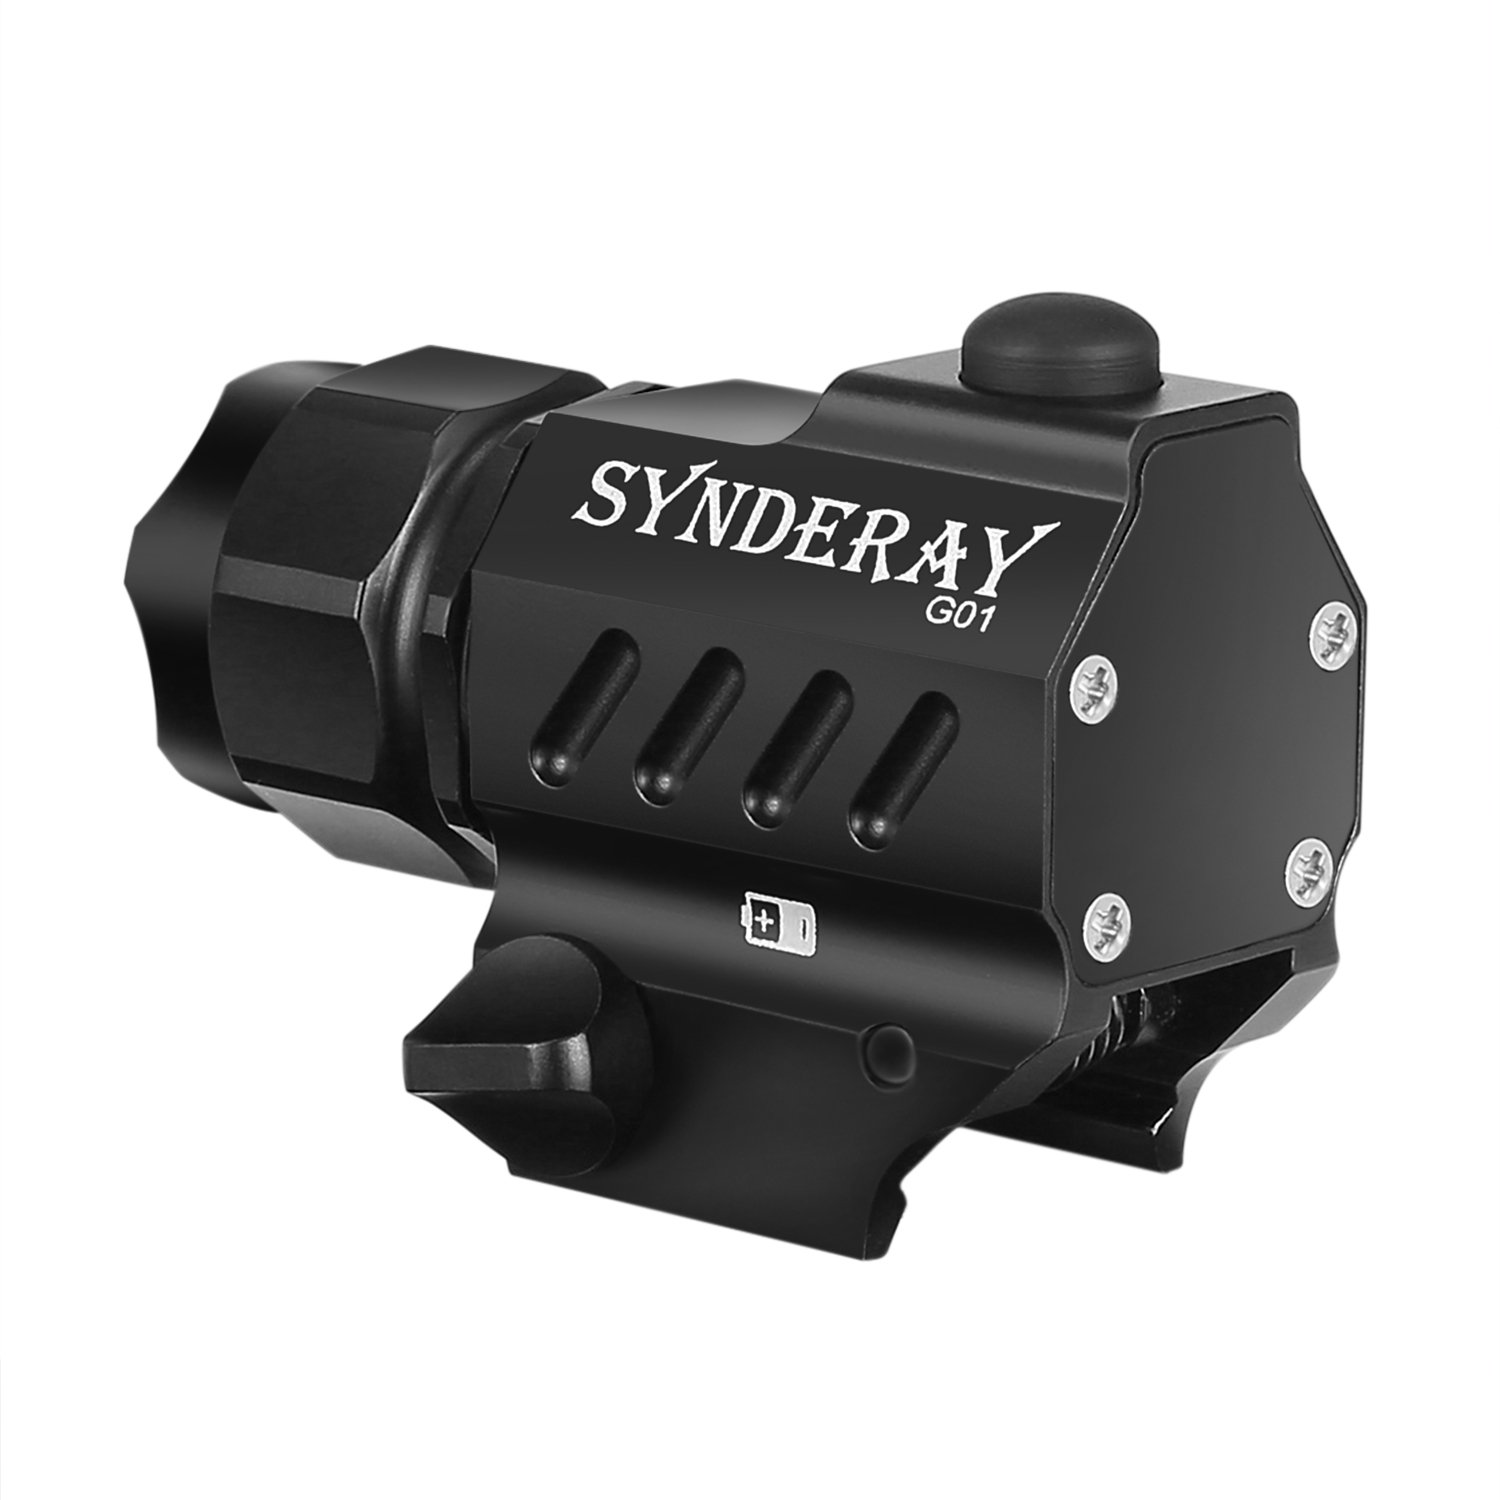 SyndeRay G01 CREE LED Tactical Gun Flashlight 2-Mode 230LM Pistol Handgun Torch Light for Hiking,Camping,Hunting and Other Indoor/Outdoor Activities by SyndeRay (Image #8)